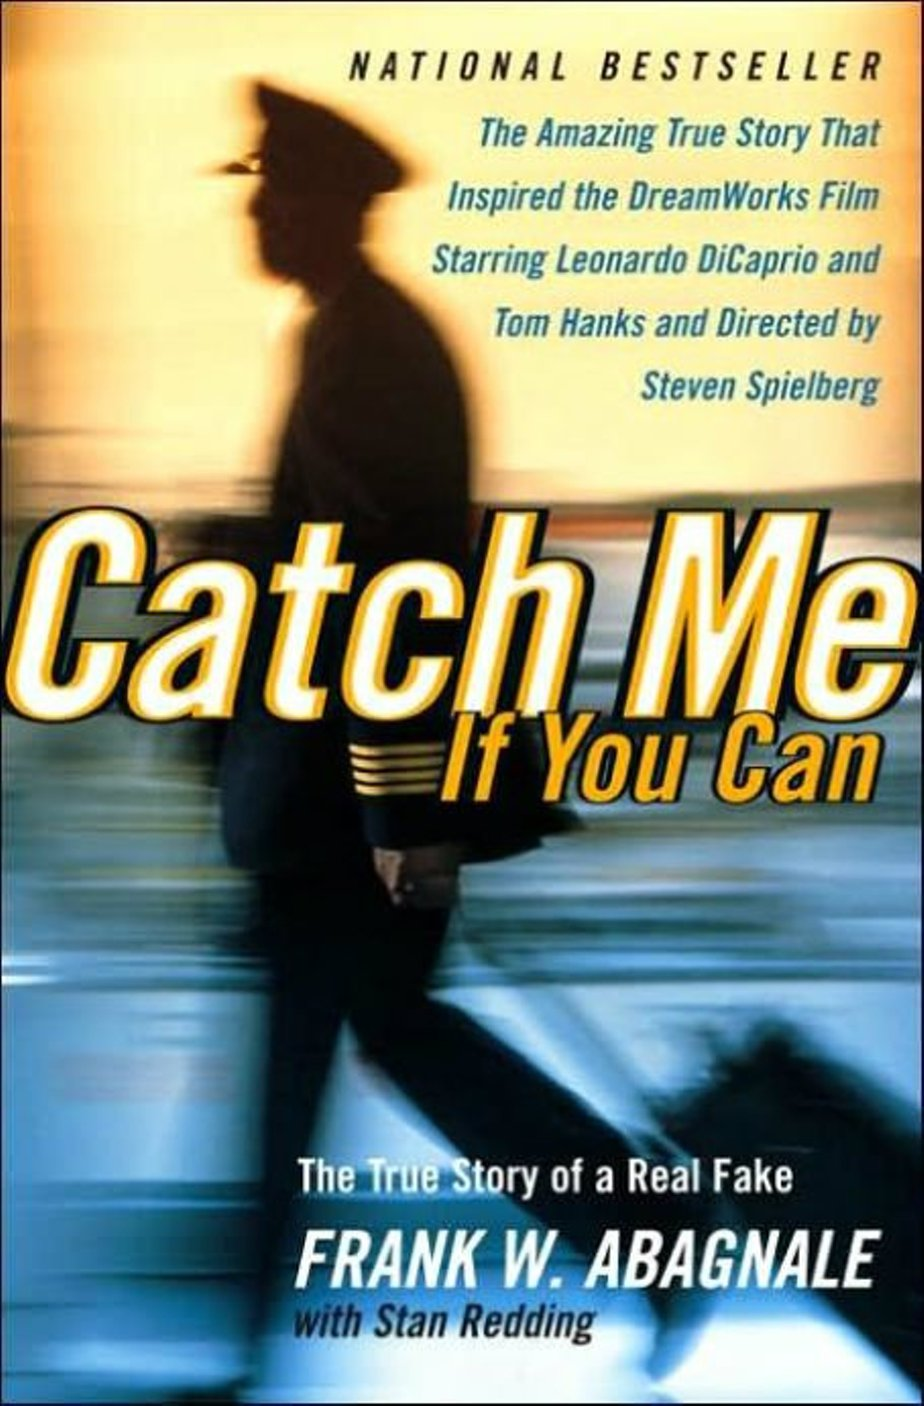 mr abagnale the true antihero behind the story catch me if you can by mr abagnale